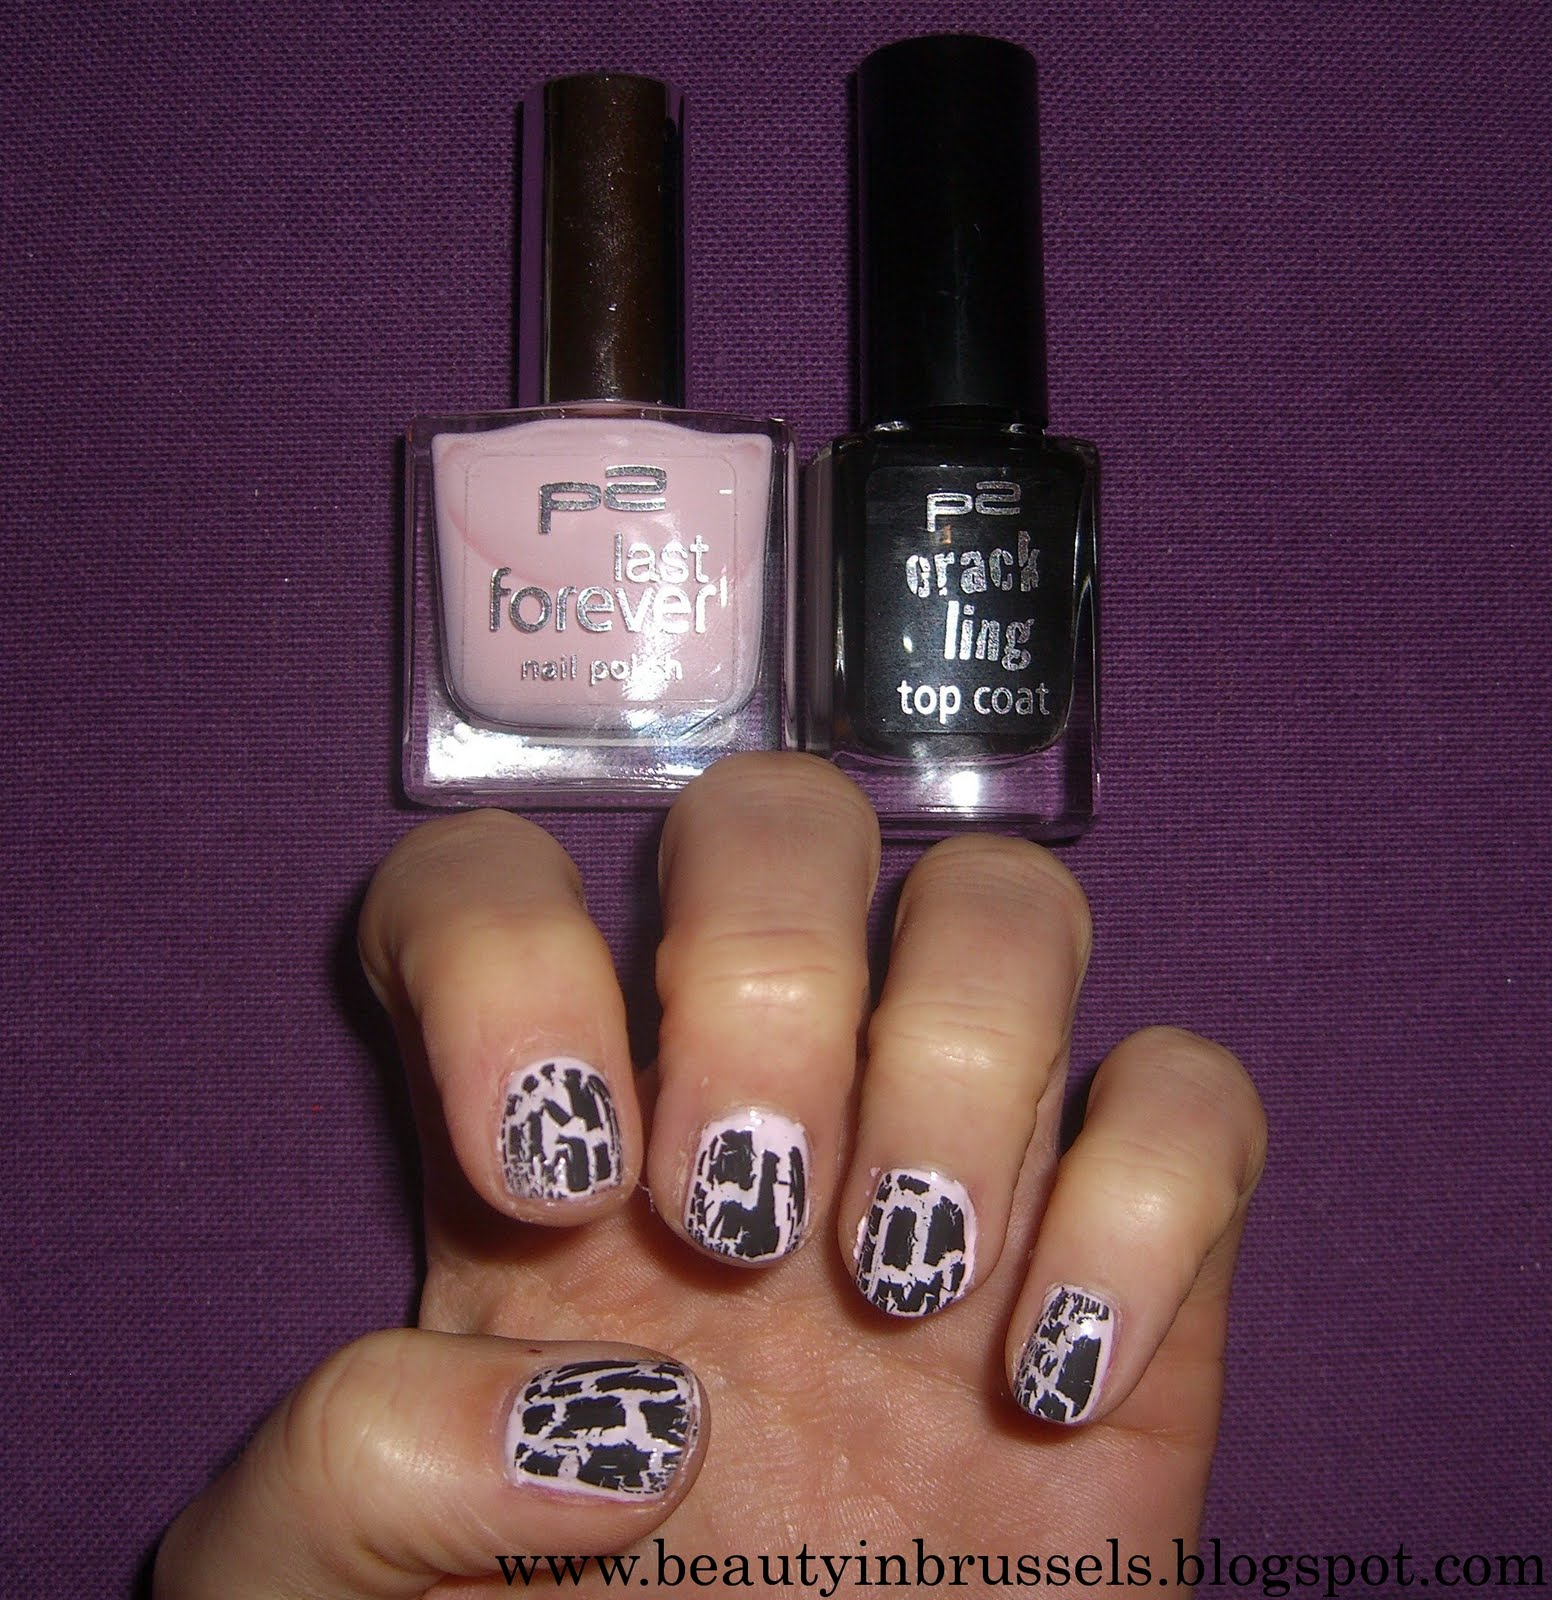 Beauty In Brussels P2 Last Forever Nail Polish + P2 Crack Ling Top Coat